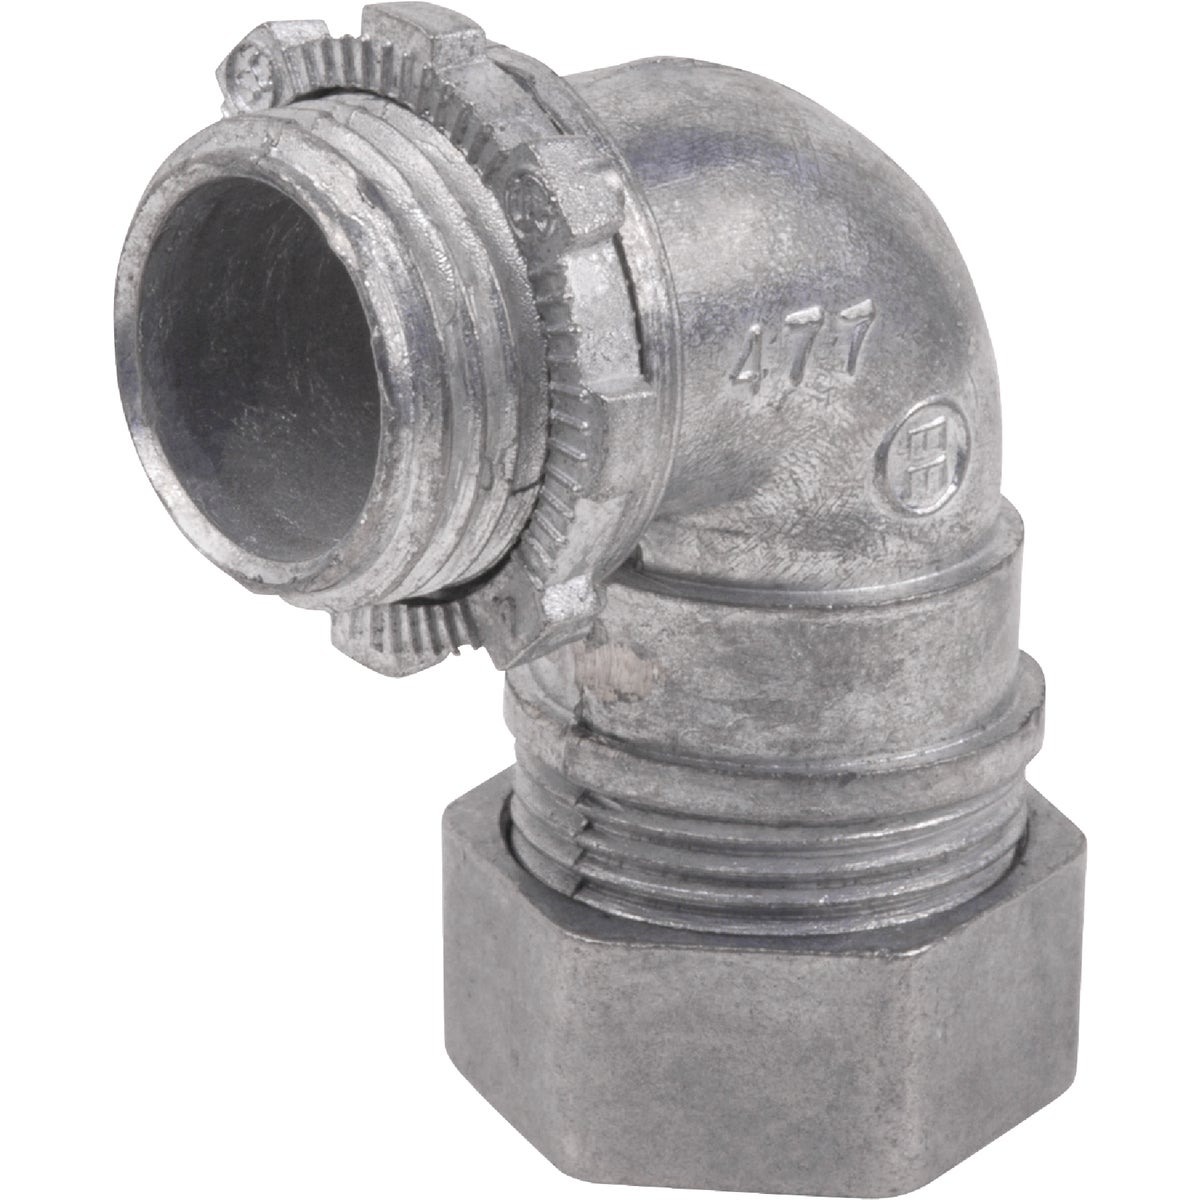 "3/4"" 90DEG EMT CONNECTOR - TC912SC1 by Thomas & Betts"